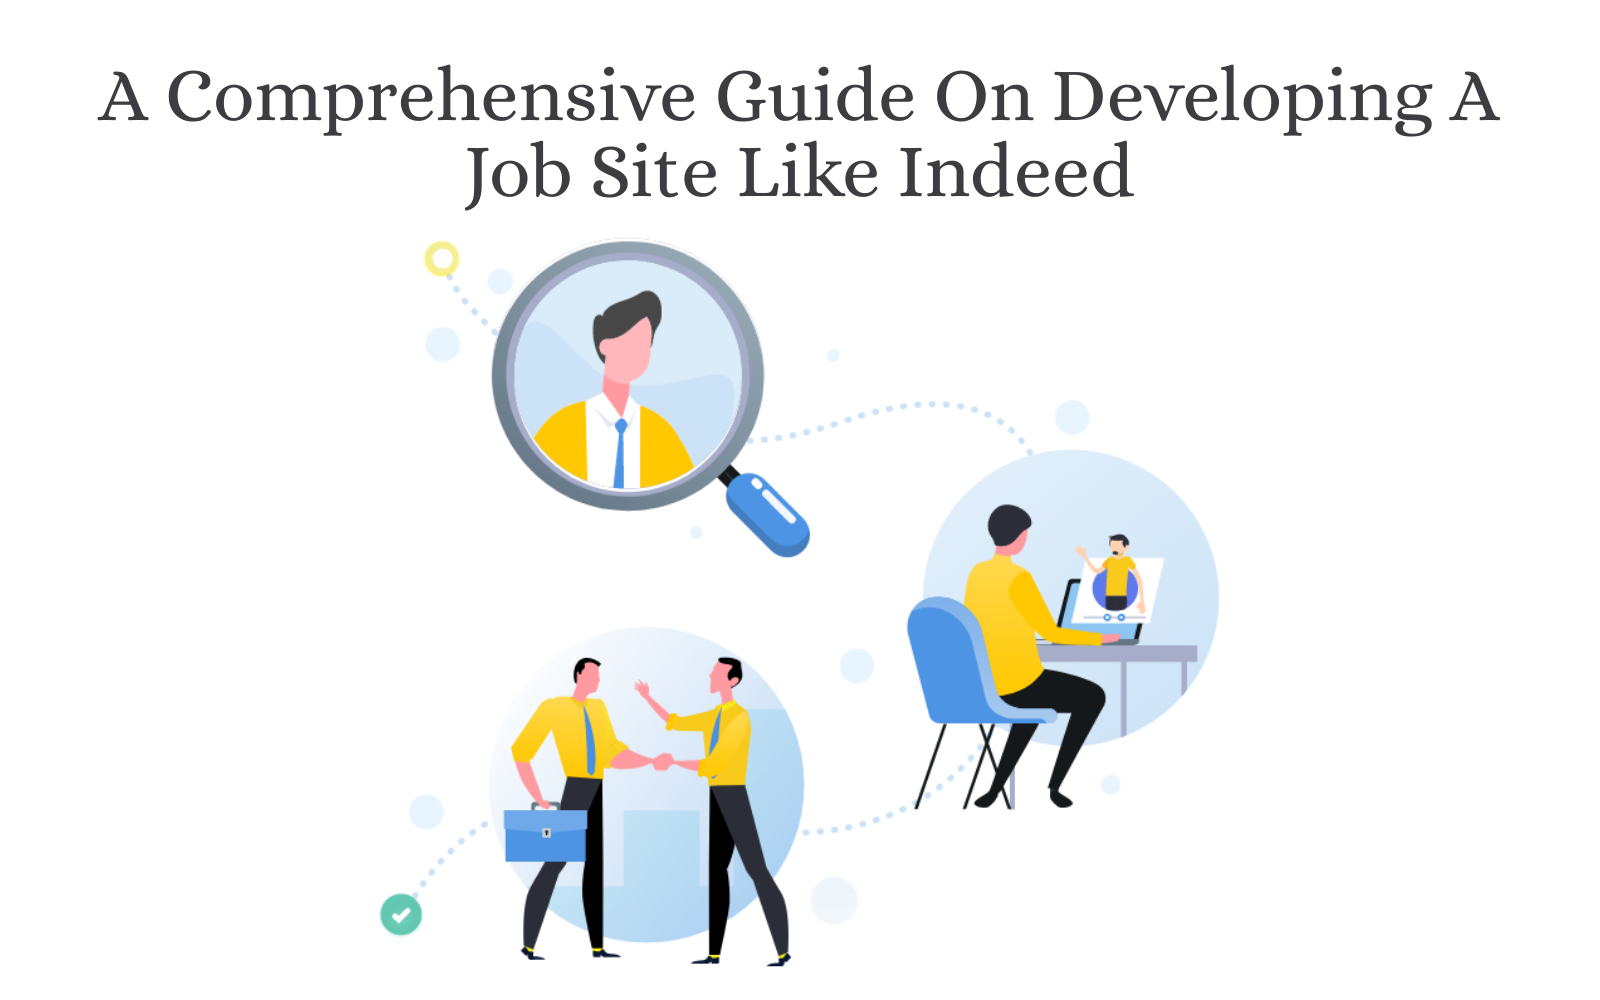 A Comprehensive Guide On Developing A Job Site Like Indeed